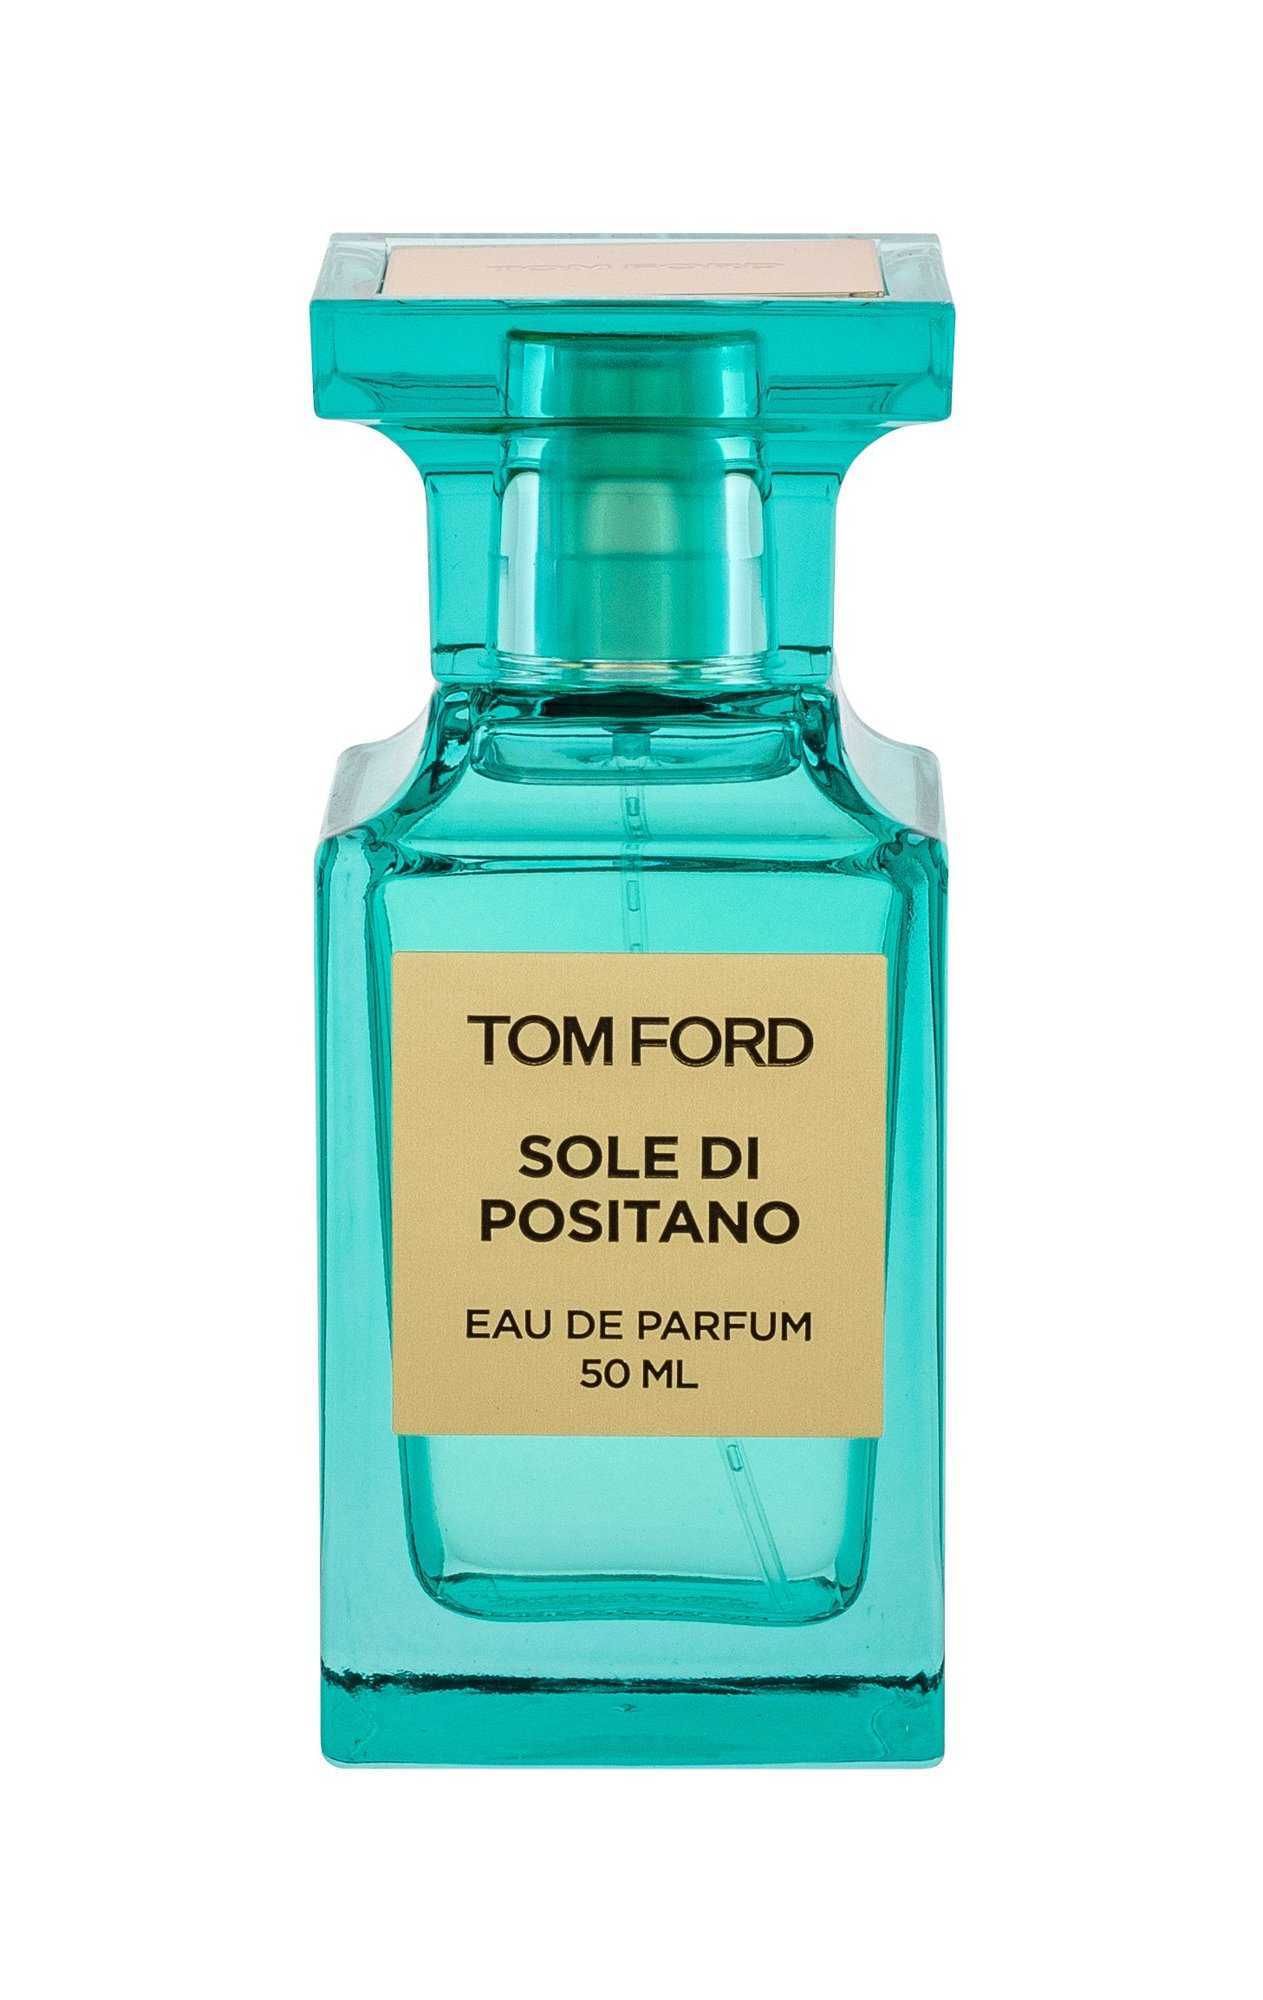 TOM FORD Sole di Positano, edp 100ml